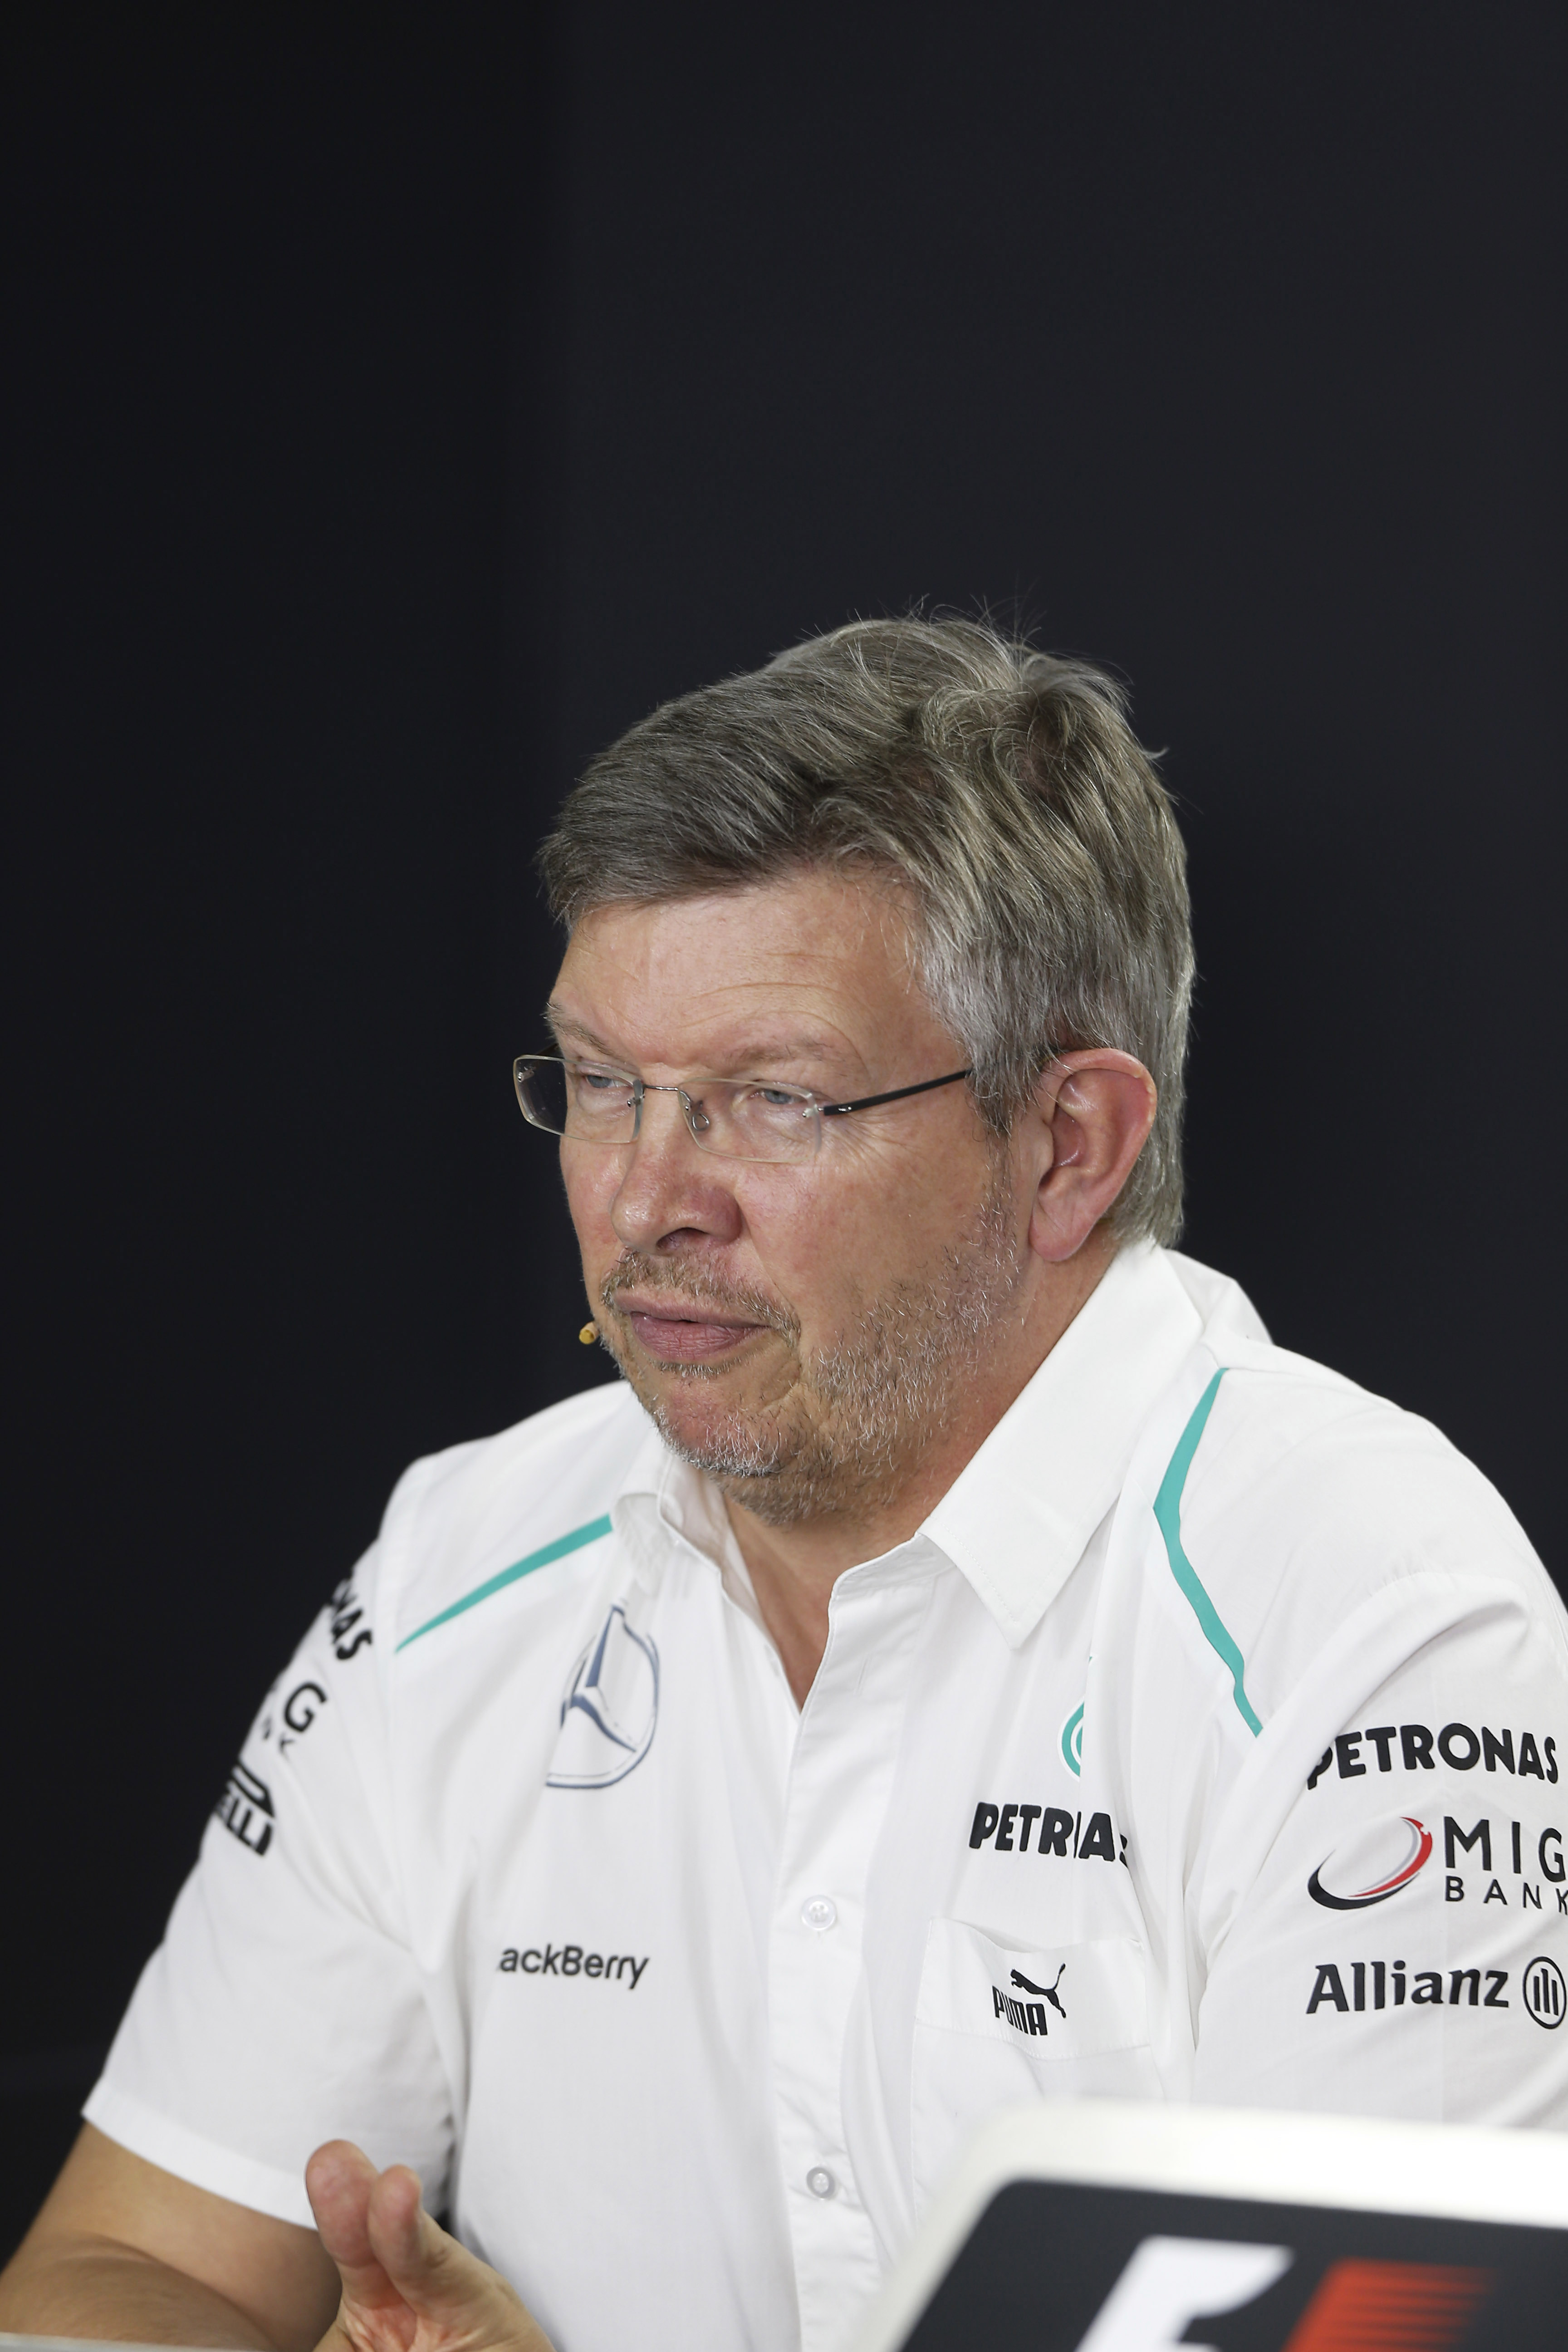 Ross Brawn returns to F1 in organisational role